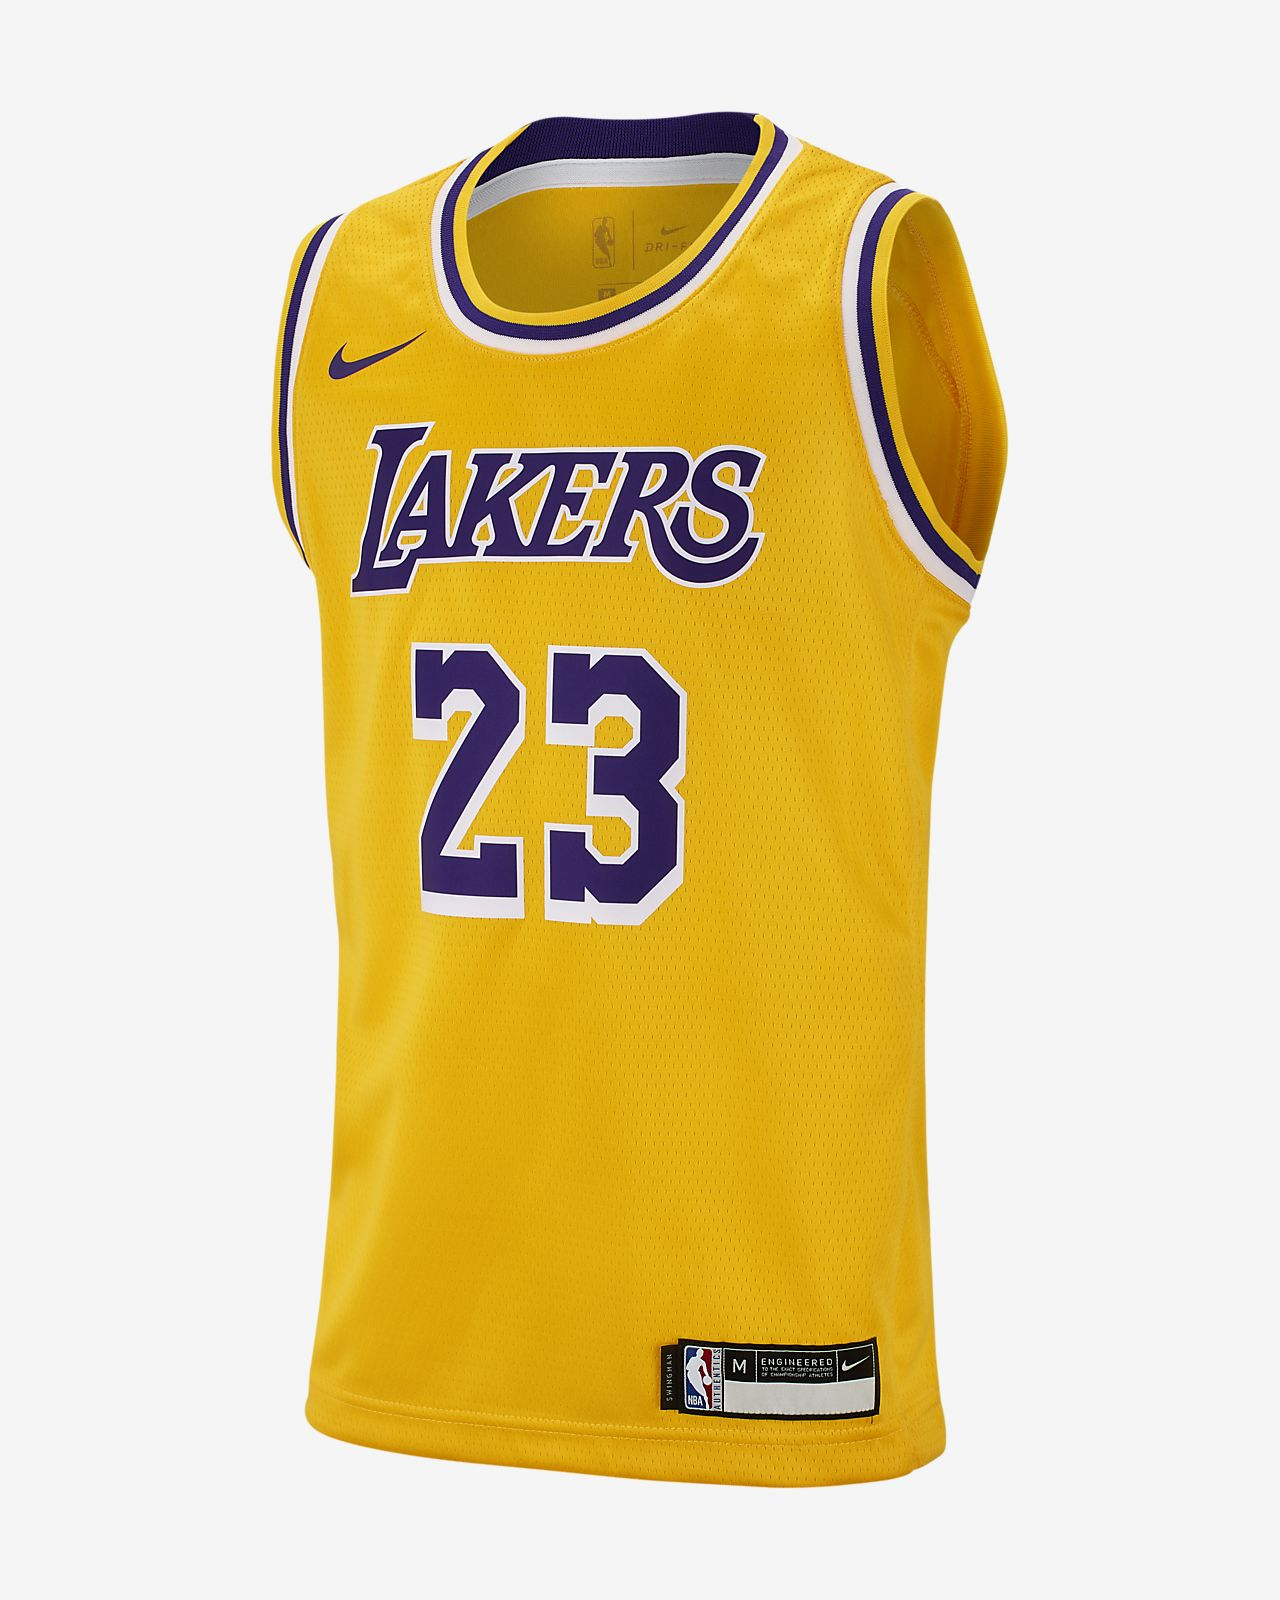 39e5c987a00 Big Kids' Nike NBA Jersey. LeBron James Icon Edition Swingman (Los Angeles  Lakers)